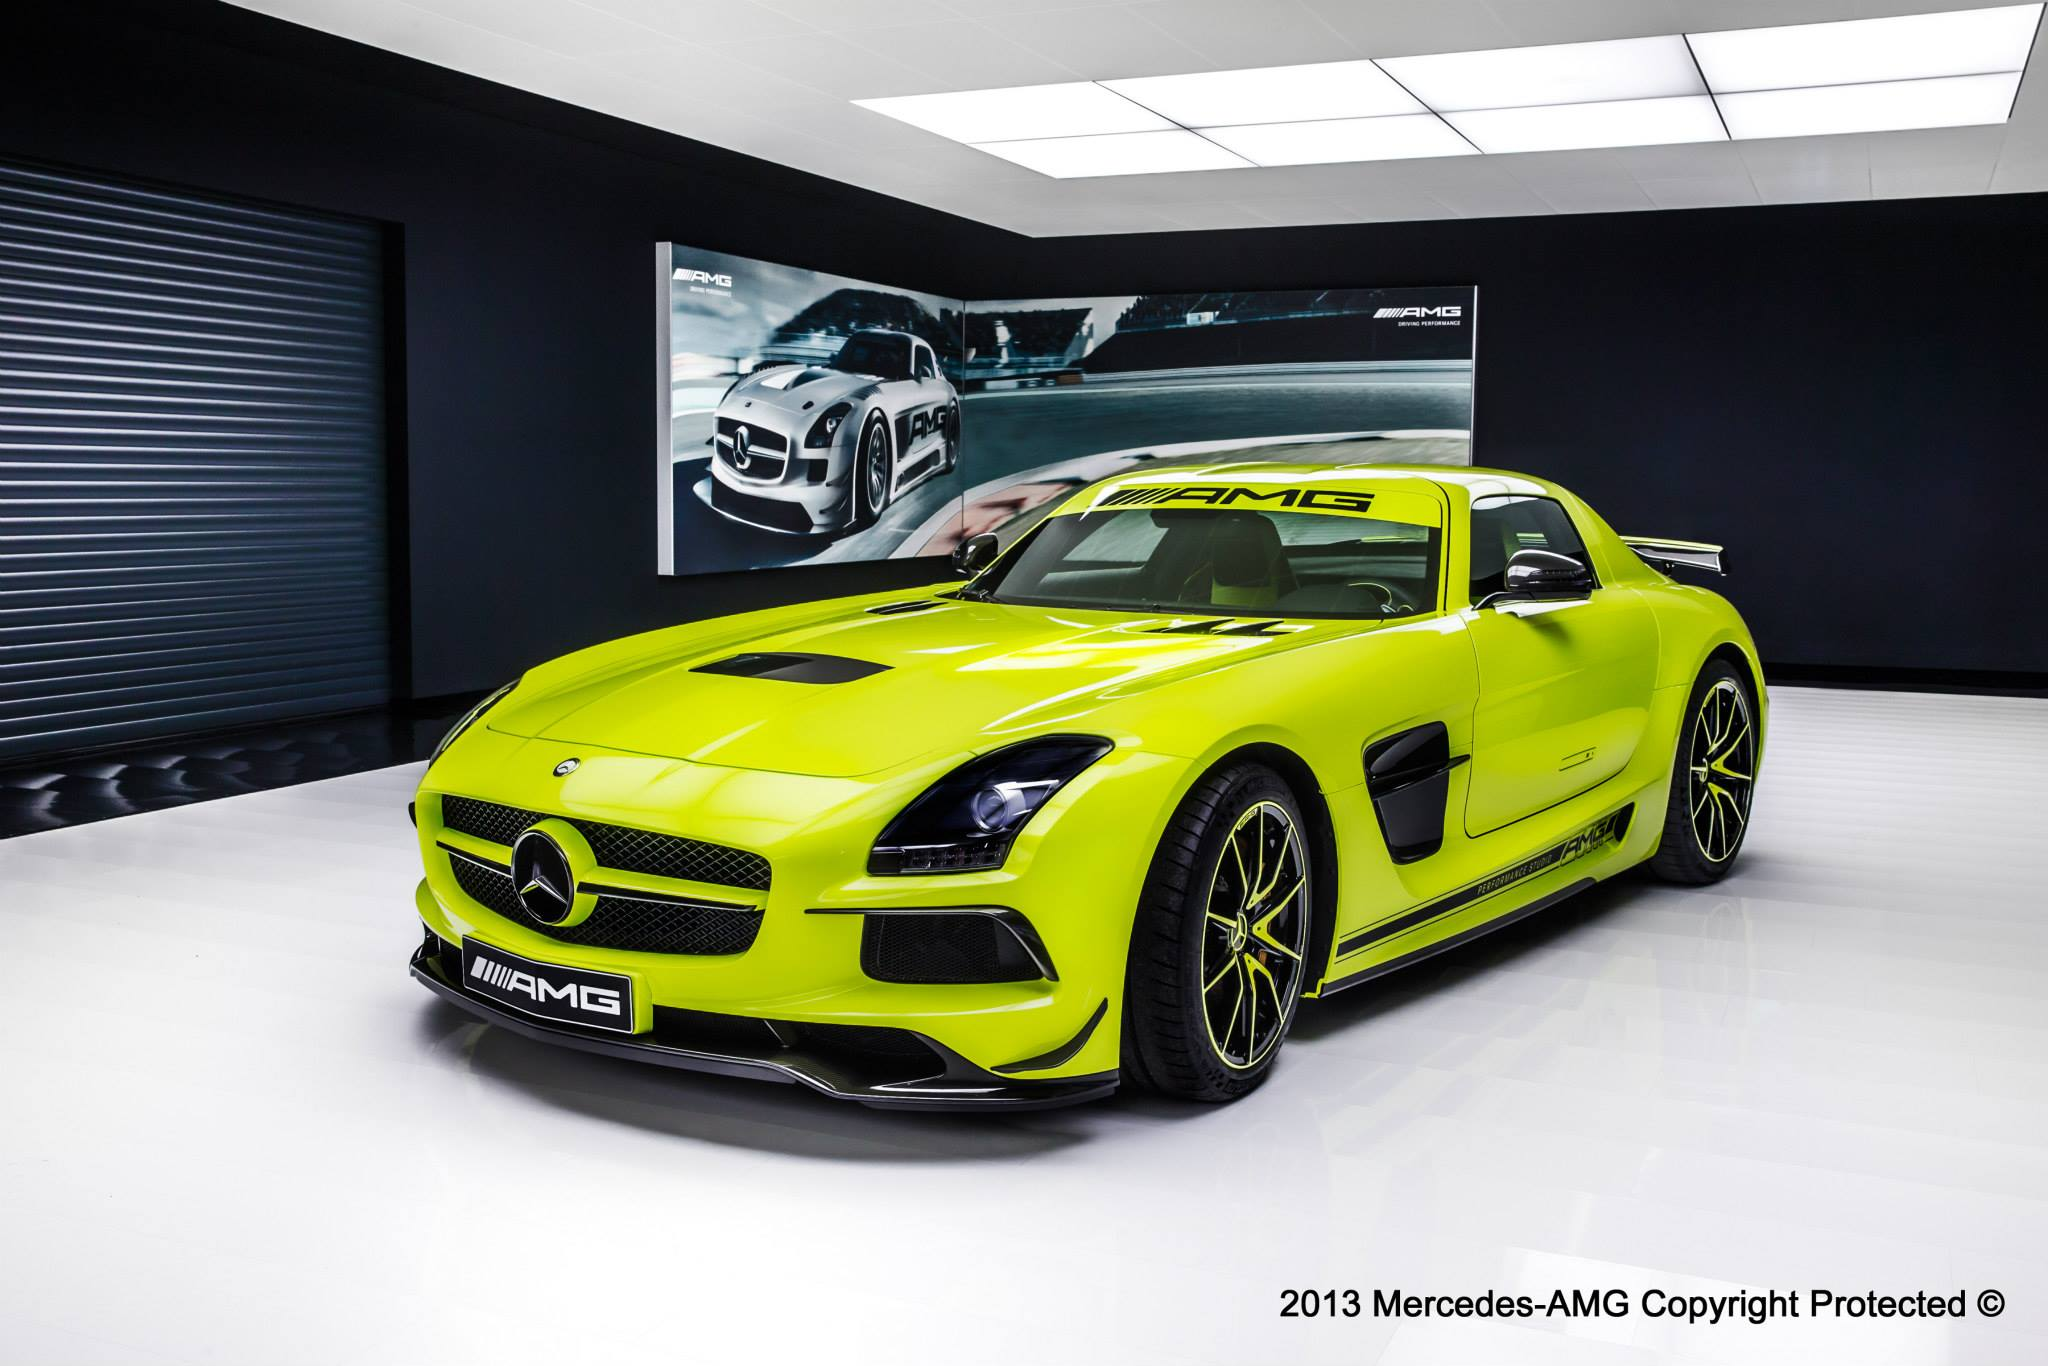 2014 Mercedes Benz SLS AMG Black Series By AMG Performance Studio | Top  Speed. »